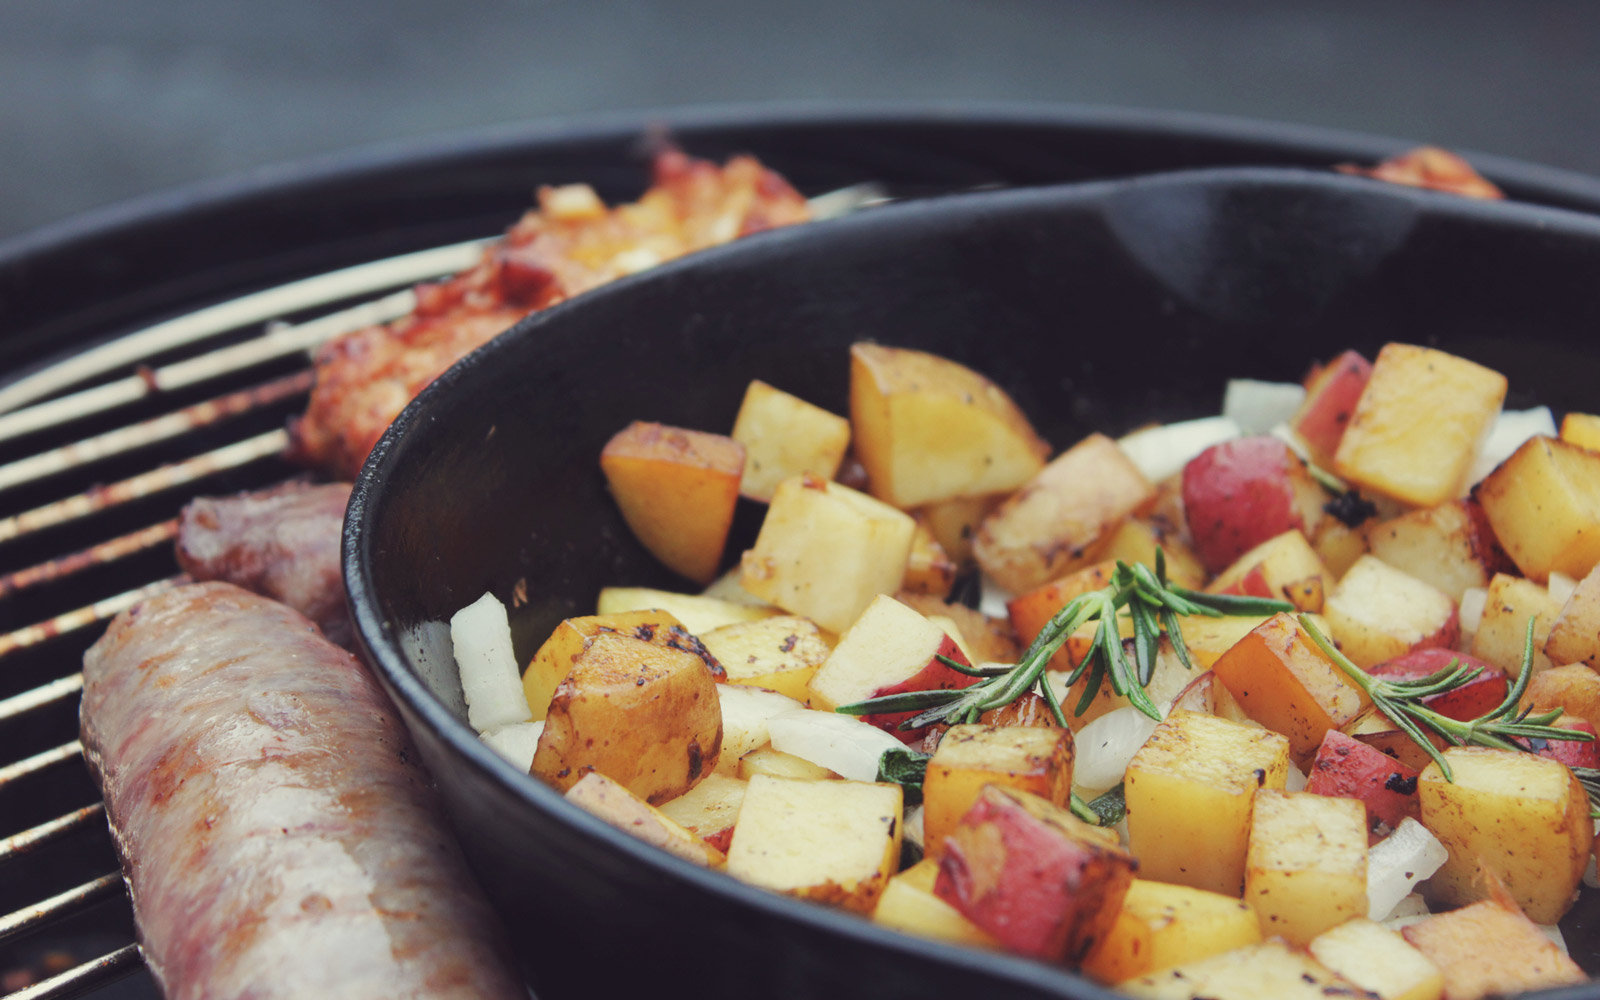 Cast iron skillet sits on grill with potatoes and rosemary inside.